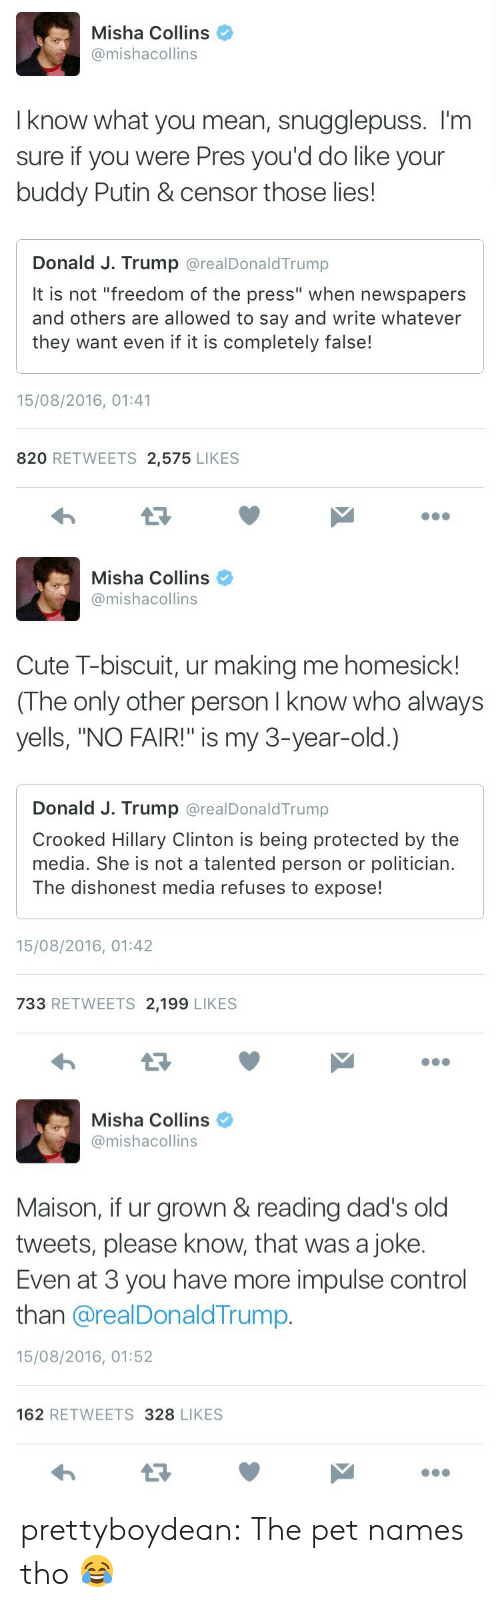 """Putin: Misha Collins  @mishacollins  I know what you mean, snugglepuss. I'm  sure if you were Pres you'd do like your  buddy Putin & censor those lies!  Donald J. Trump @realDonaldTrump  It is not """"freedom of the press"""" when newspapers  and others are allowed to say and write whatever  they want even if it is completely false!  15/08/2016, 01:41  820 RETWEETS 2,575 LIKES   Misha Collins  @mishacollins  Cute T-biscuit, ur making me homesick!  (The only other person I know who always  yells, """"NO FAIR!"""" is my 3-year-old.)  Donald J. Trump @realDonaldTrump  Crooked Hillary Clinton is being protected by the  media. She is not a talented person or politician  The dishonest media refuses to expose!  15/08/2016, 01:42  733 RETWEETS 2,199 LIKES   Misha Collins  @mishacollins  Maison, if ur grown & reading dad's old  tweets, please know, that was a joke.  Even at 3 you have more impulse control  than @realDonaldTrump.  15/08/2016, 01:52  162 RETWEETS 328 LIKES prettyboydean:  The pet names tho 😂"""